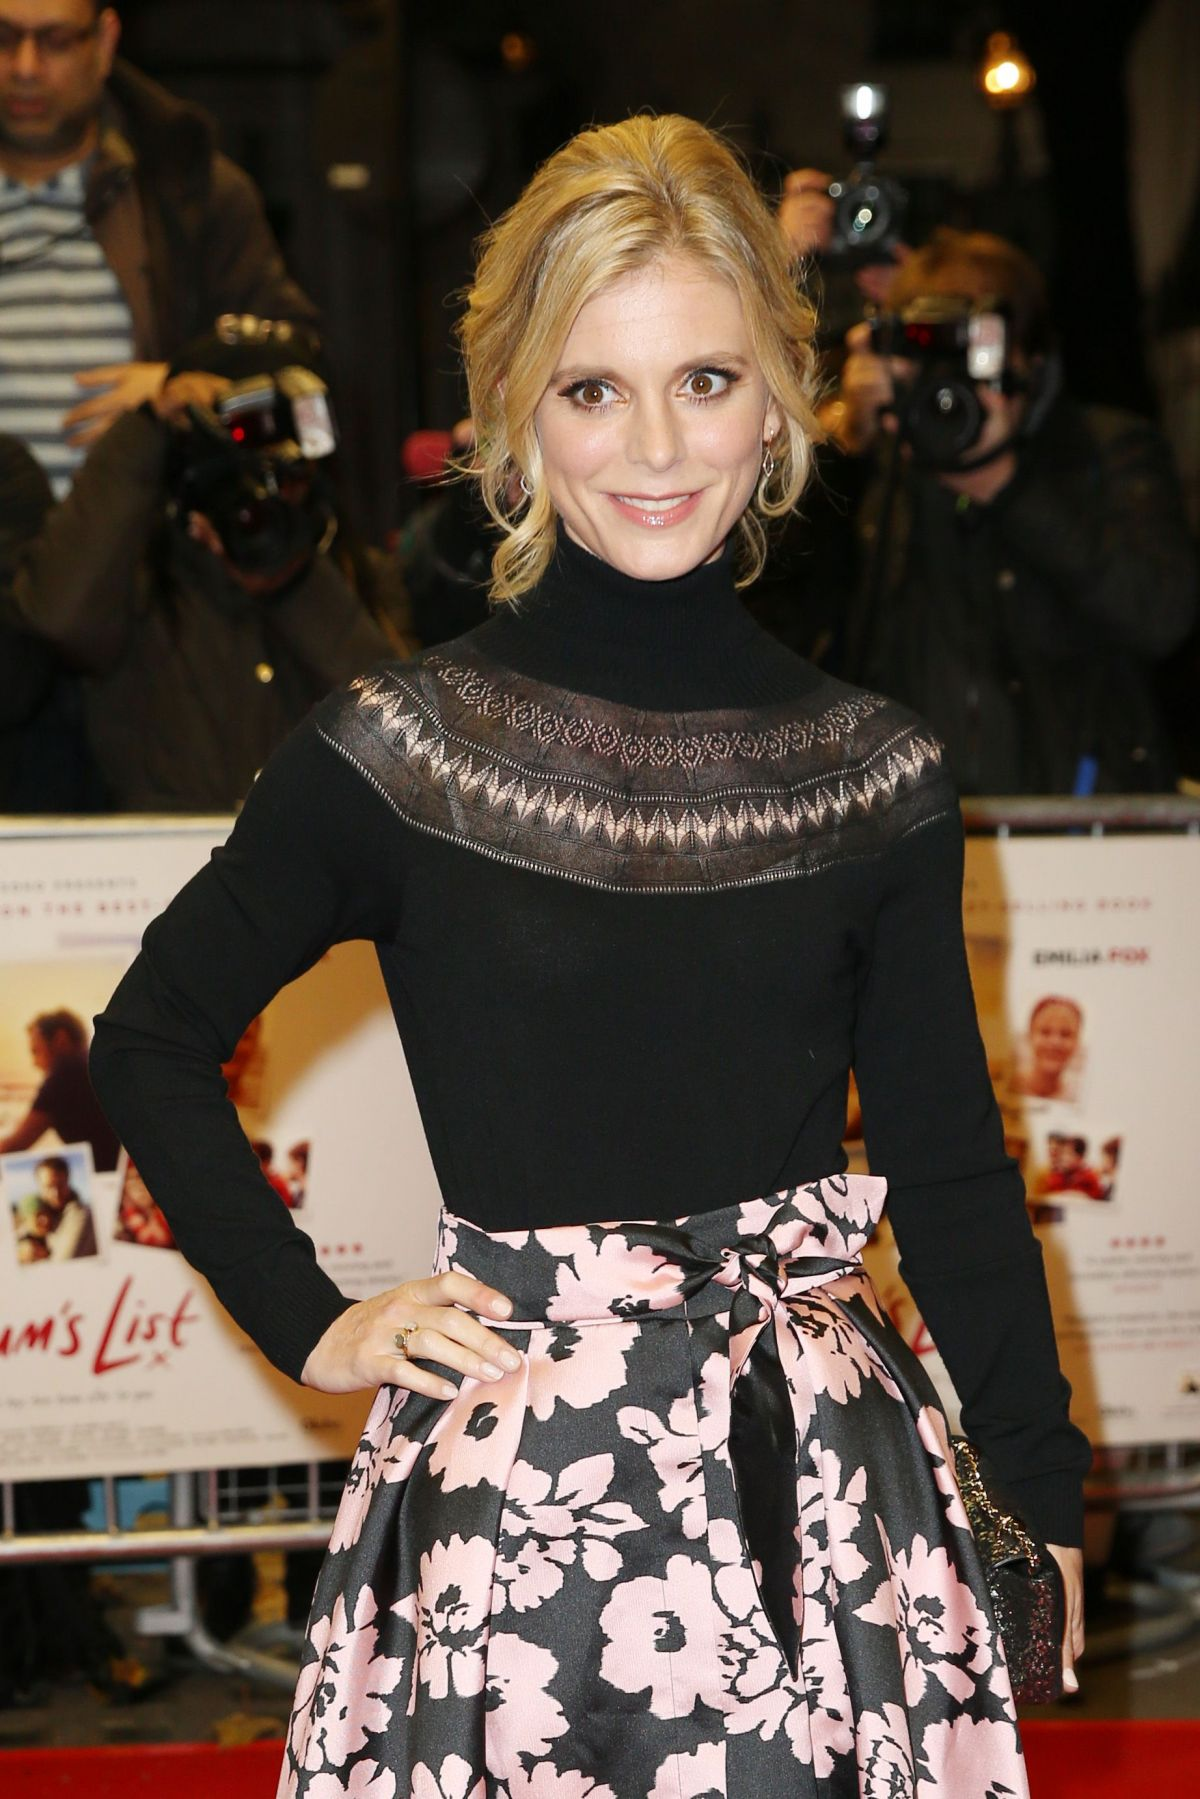 EMILIA FOX at Mum's List Premiere in London 11/23/2016